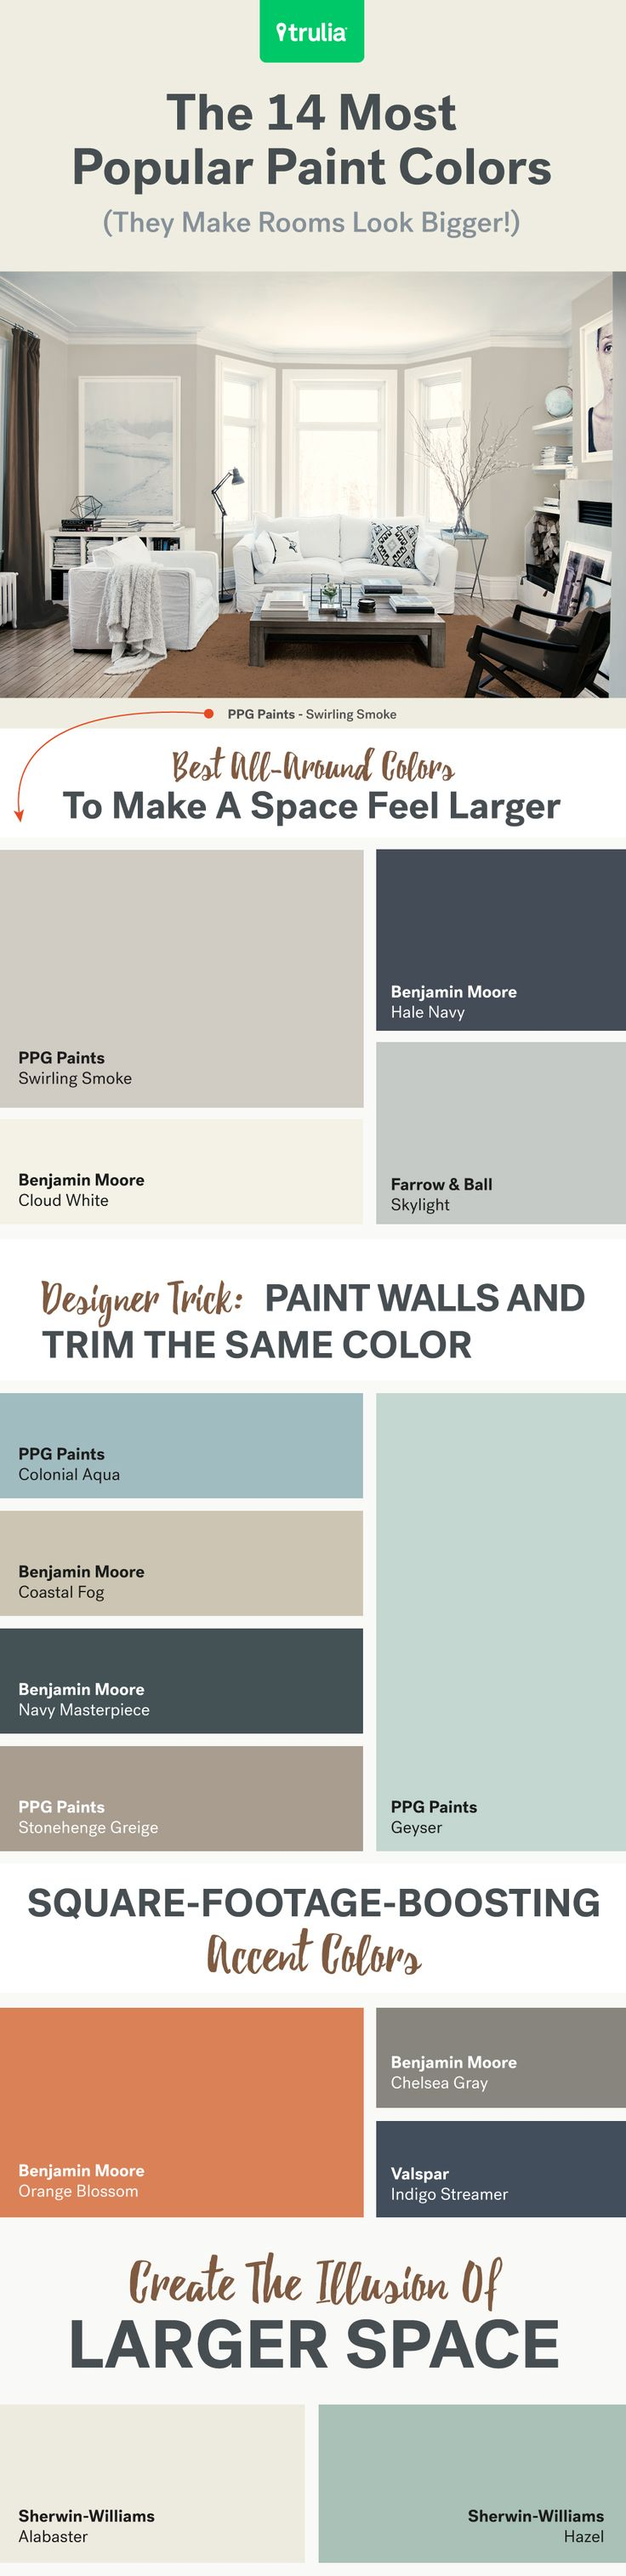 25+ best wall colors ideas on pinterest | wall paint colors, room